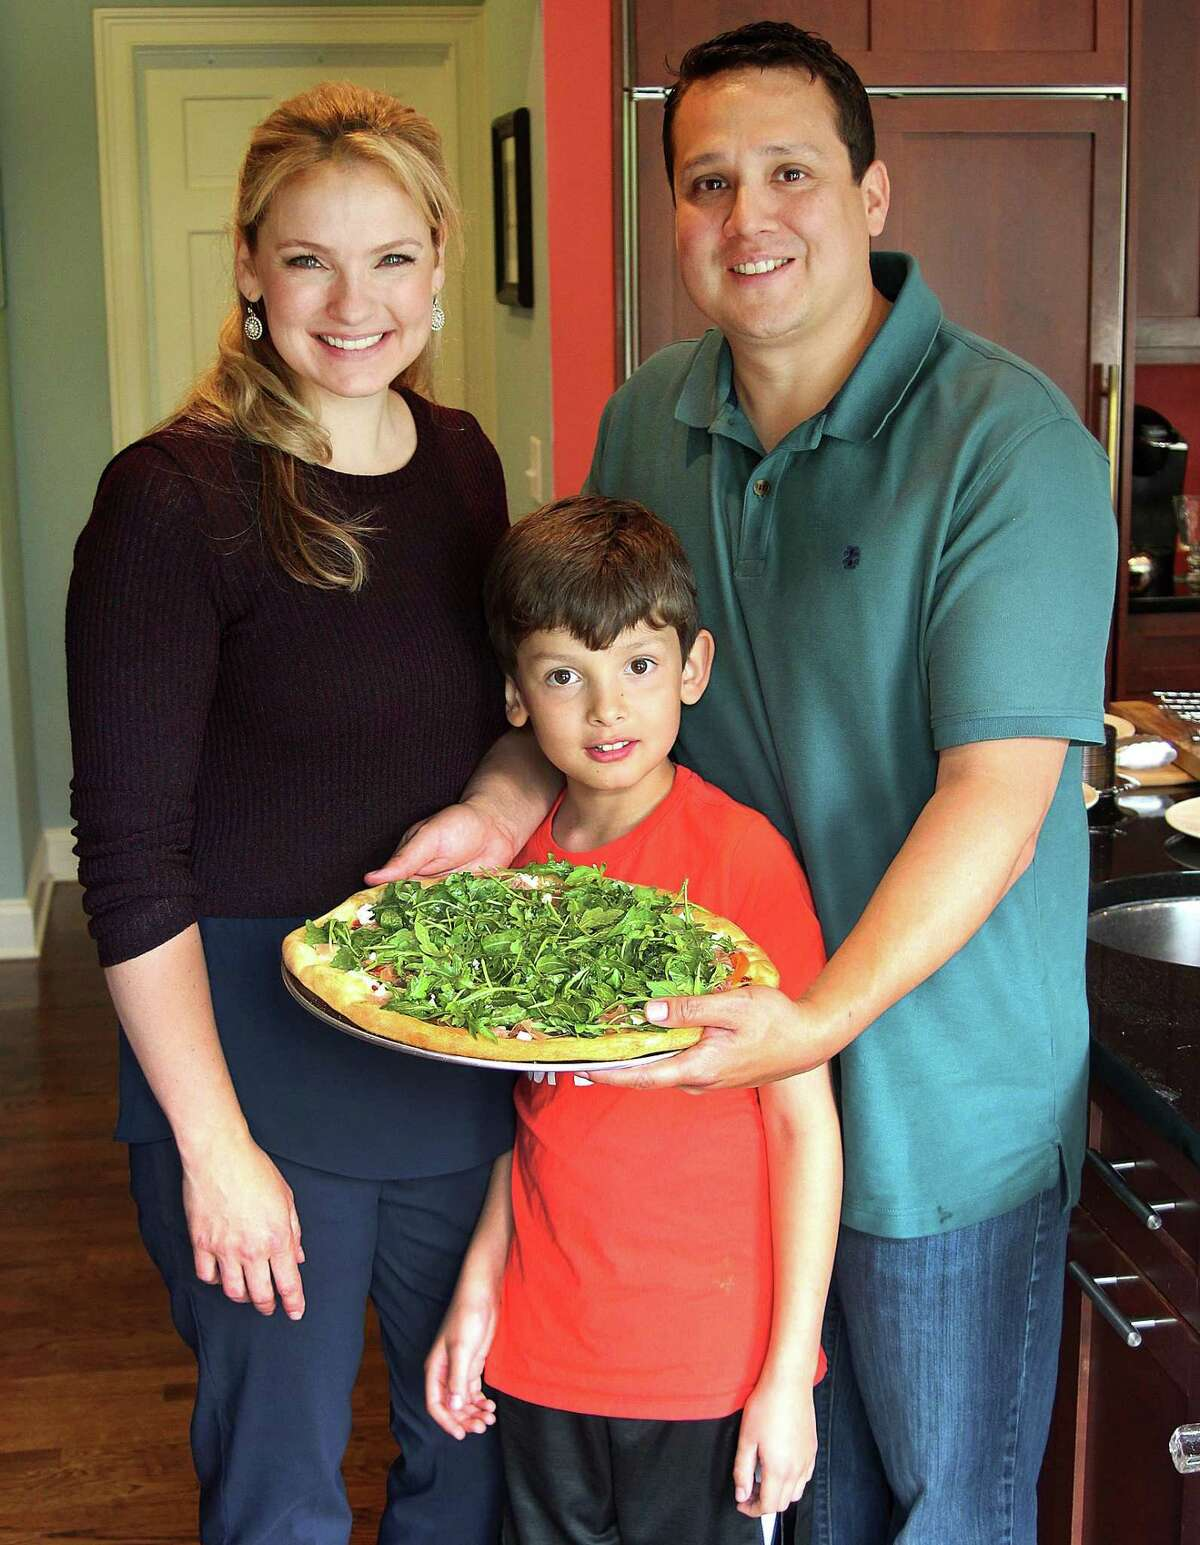 Grace, Jack and Ed Winstanley show off a freshly made goat cheese and arugula salad pizza made with PIY ingredients at a home in Ridgefield, Conn., on Wednesday, May 31, 2017.